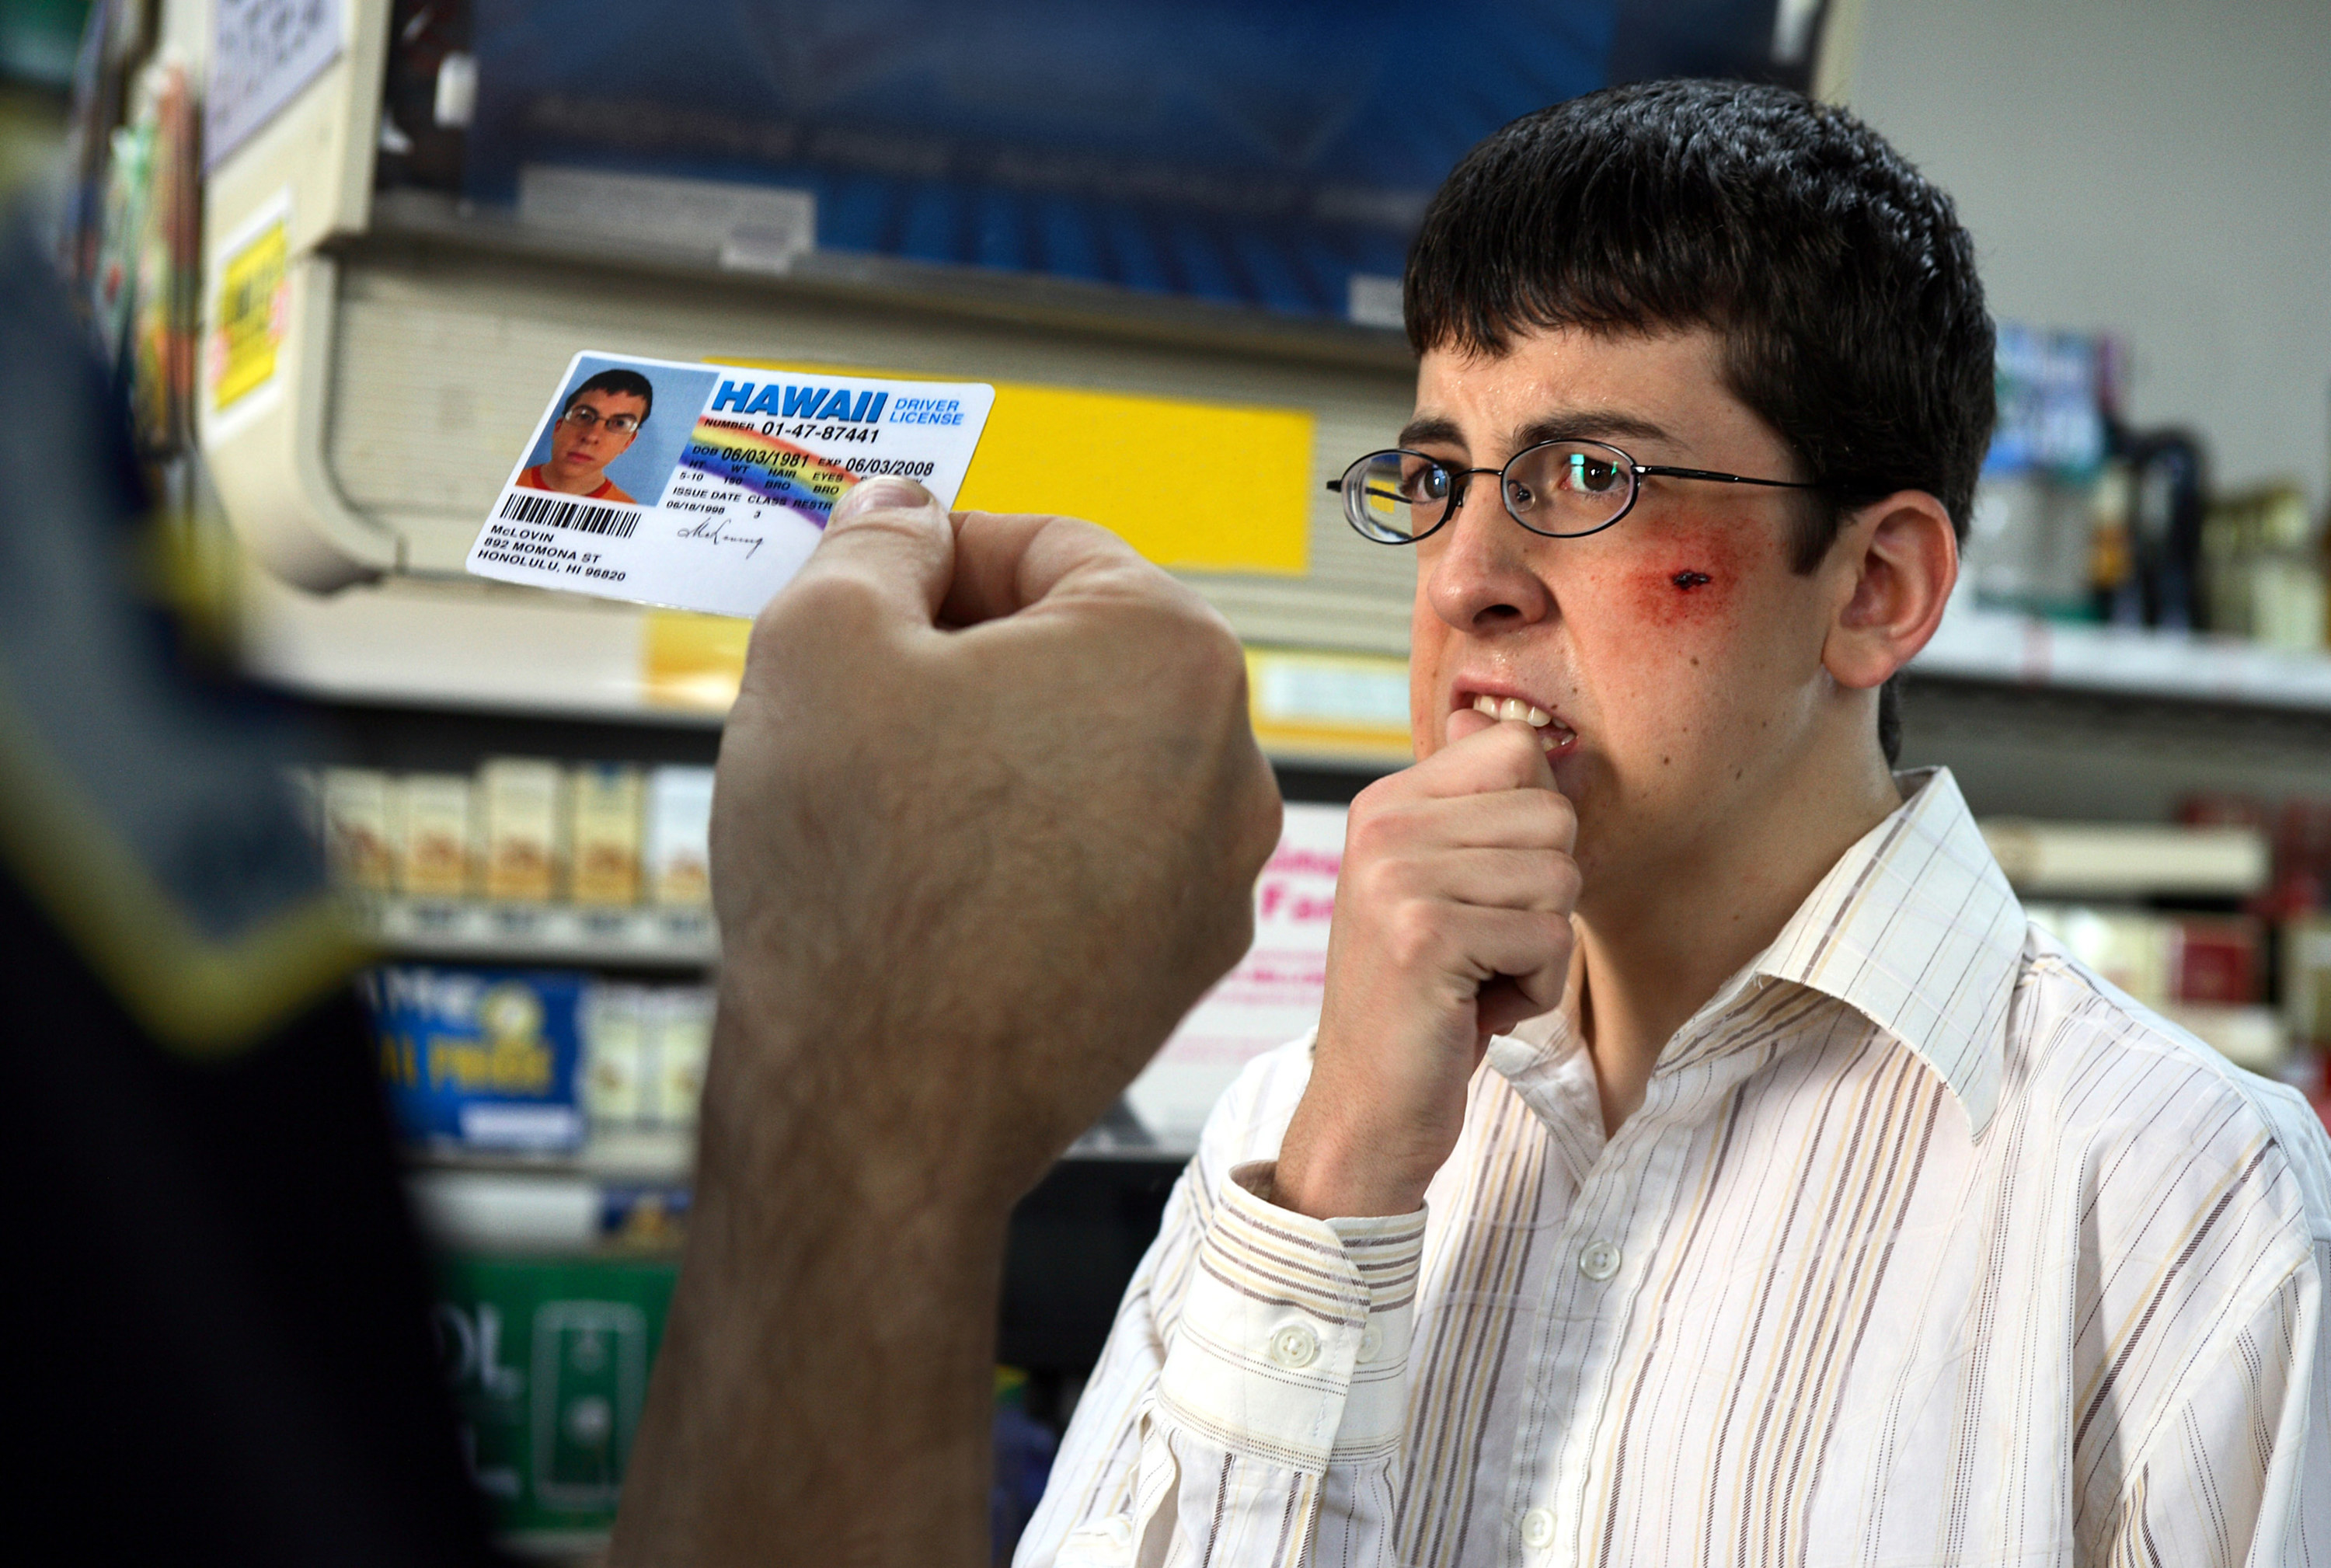 McLovin' getting ID-ed at the drugstores by the cops